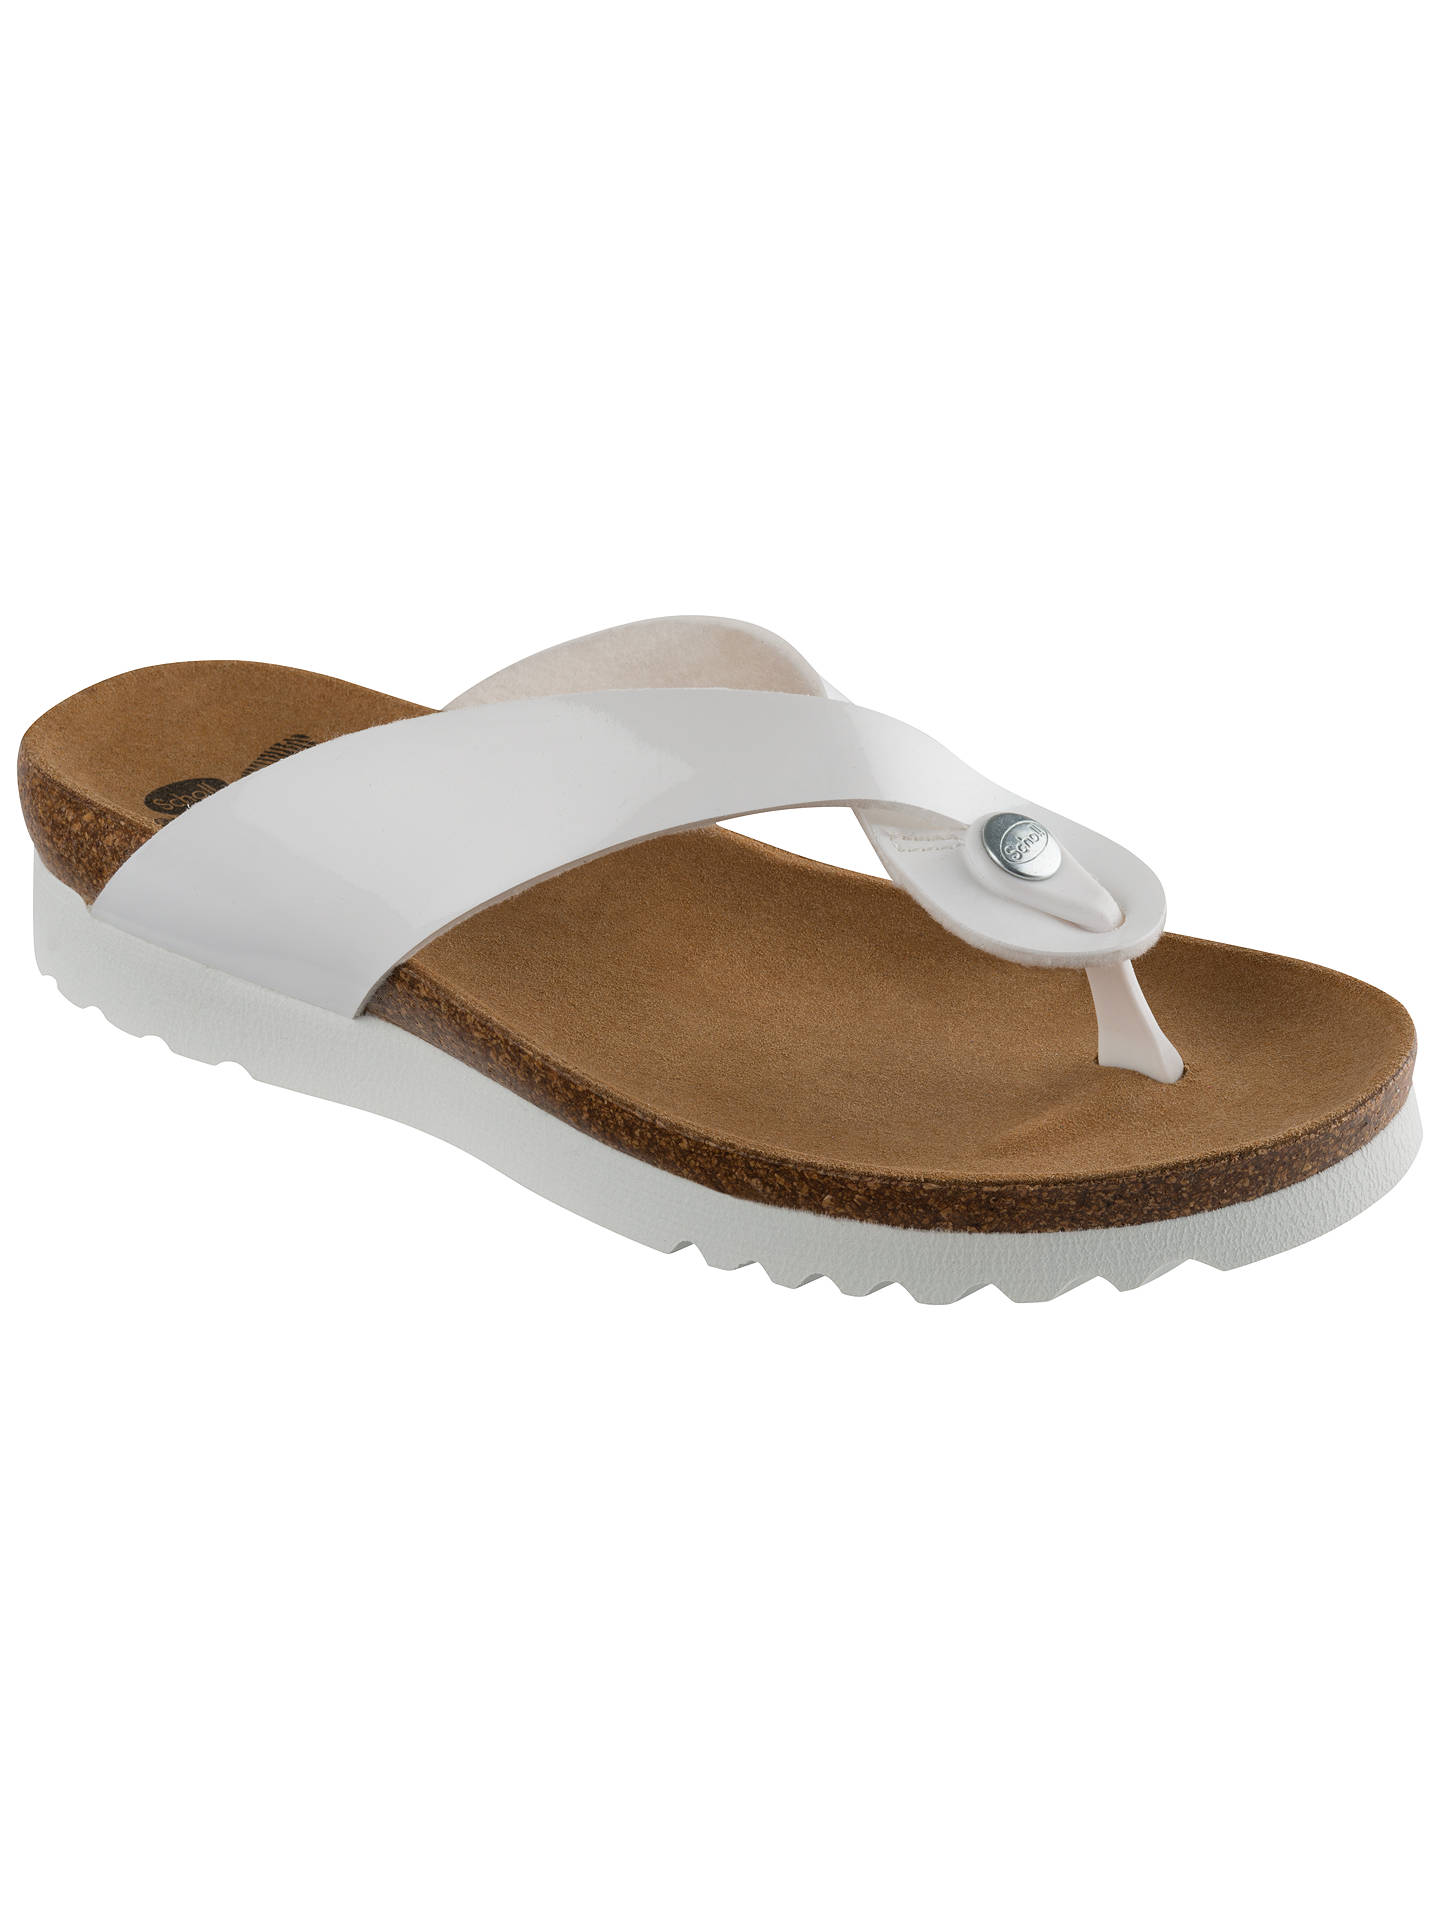 ad8416116 View All Women s Sandals. Buy Scholl Kenna Toe Post Sandals